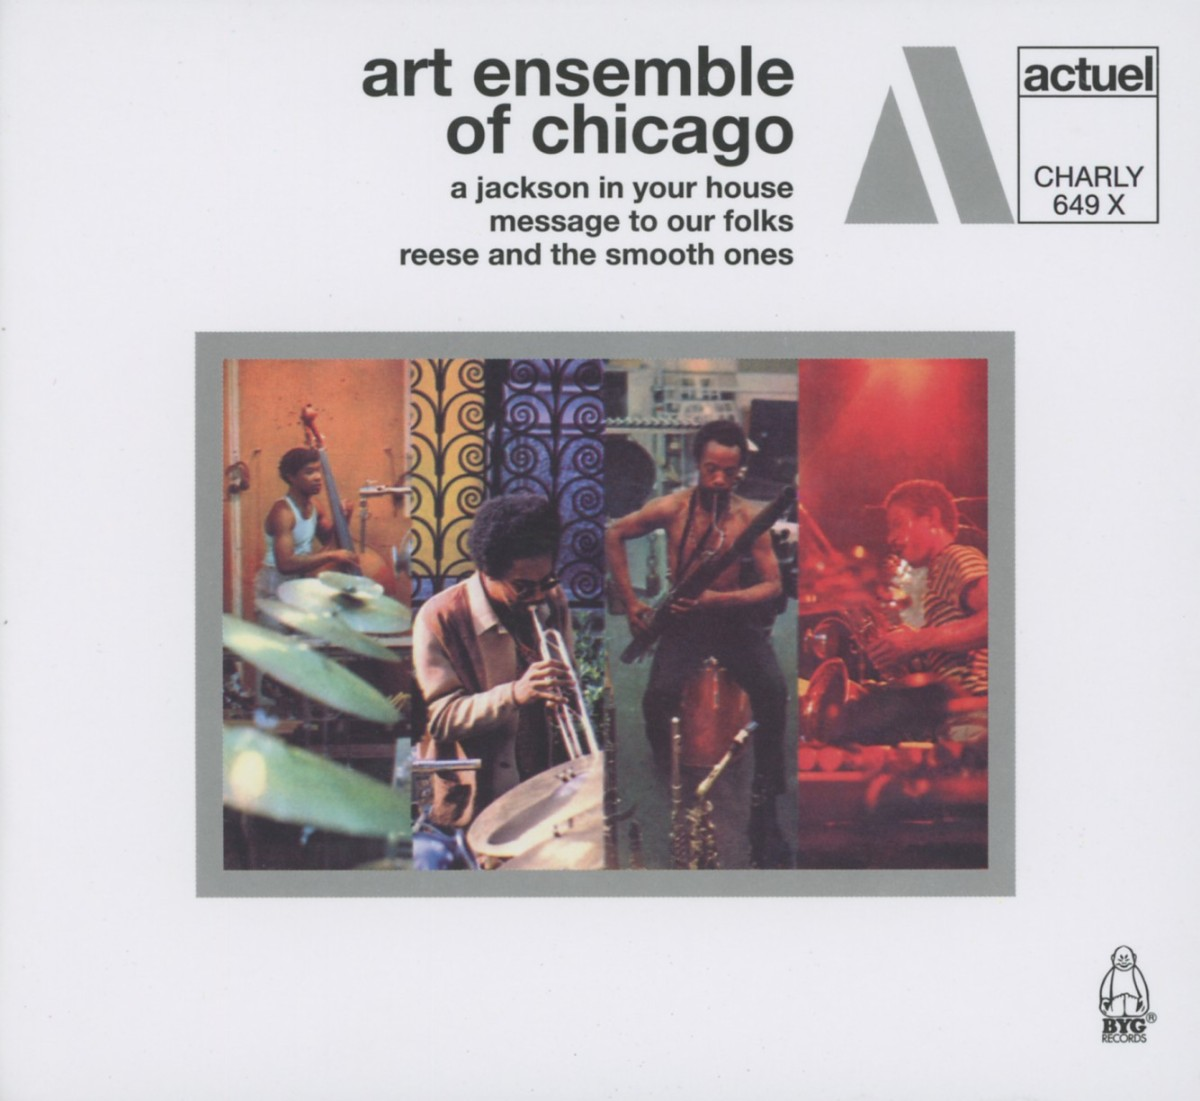 The-Art-Ensemble-of-Chicago-Jackson-in-Your-House-Message-to-Our-Folks